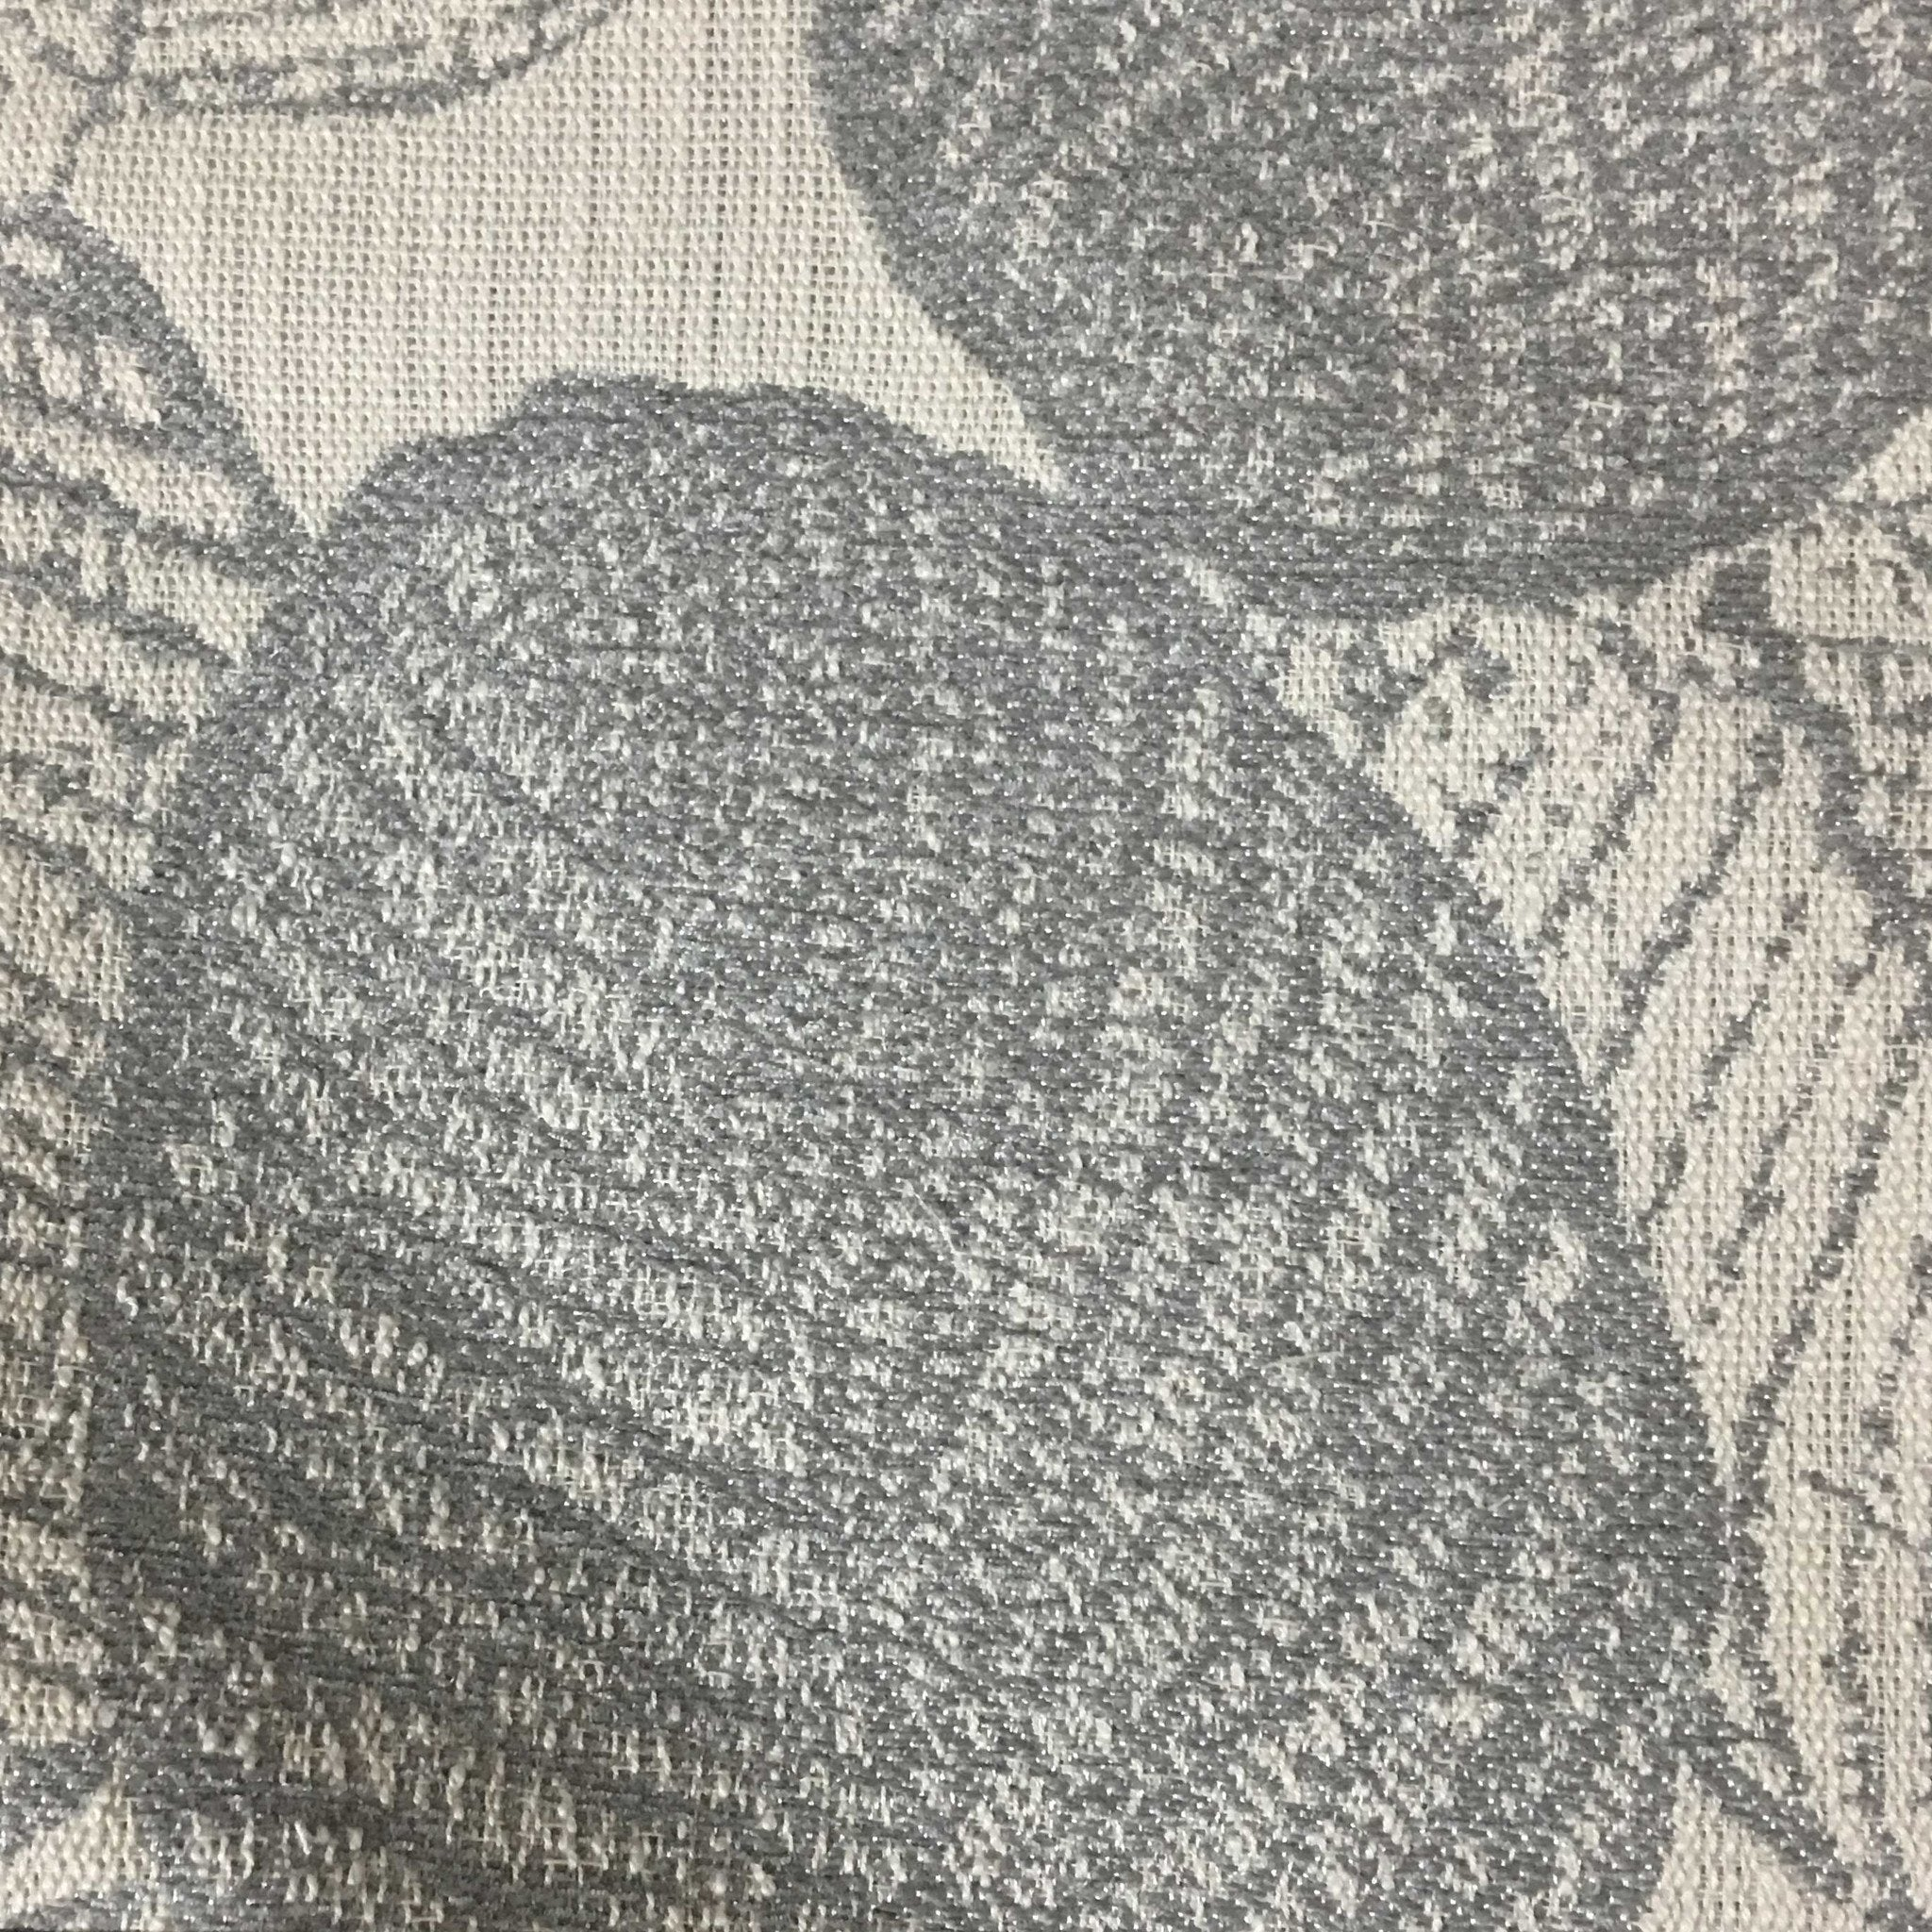 Suede Upholstery Fabric >> Shade - Tropical Pattern Woven Texture Upholstery Fabric by the Yard - - Top Fabric